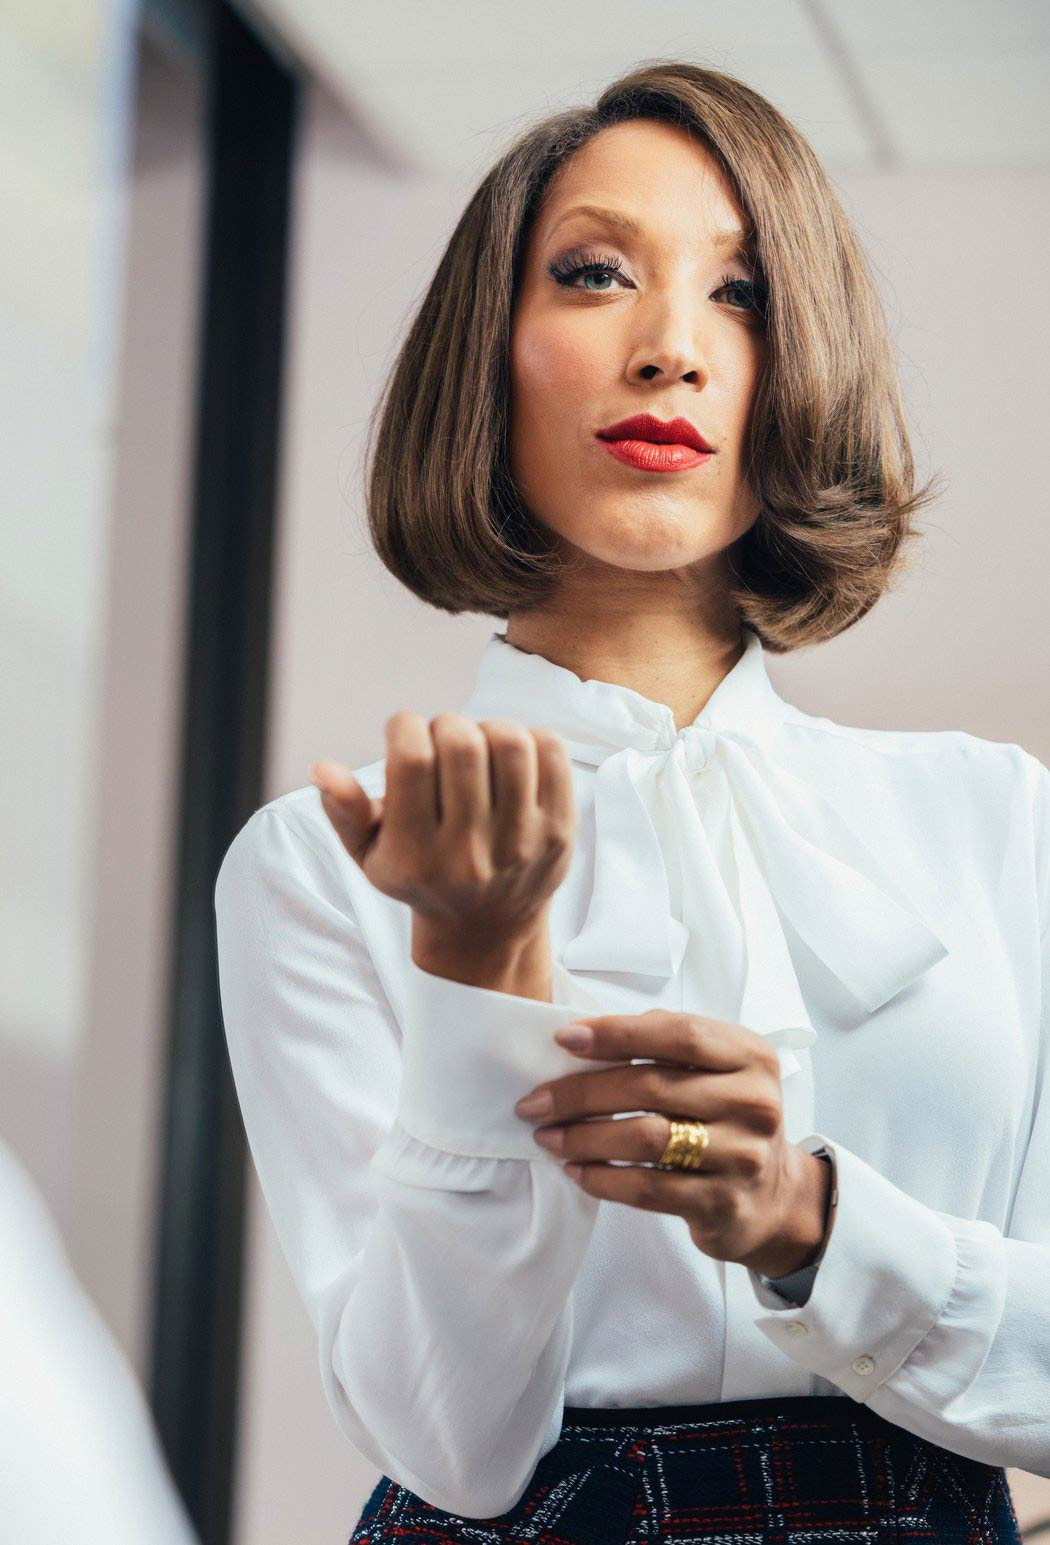 robinthede1